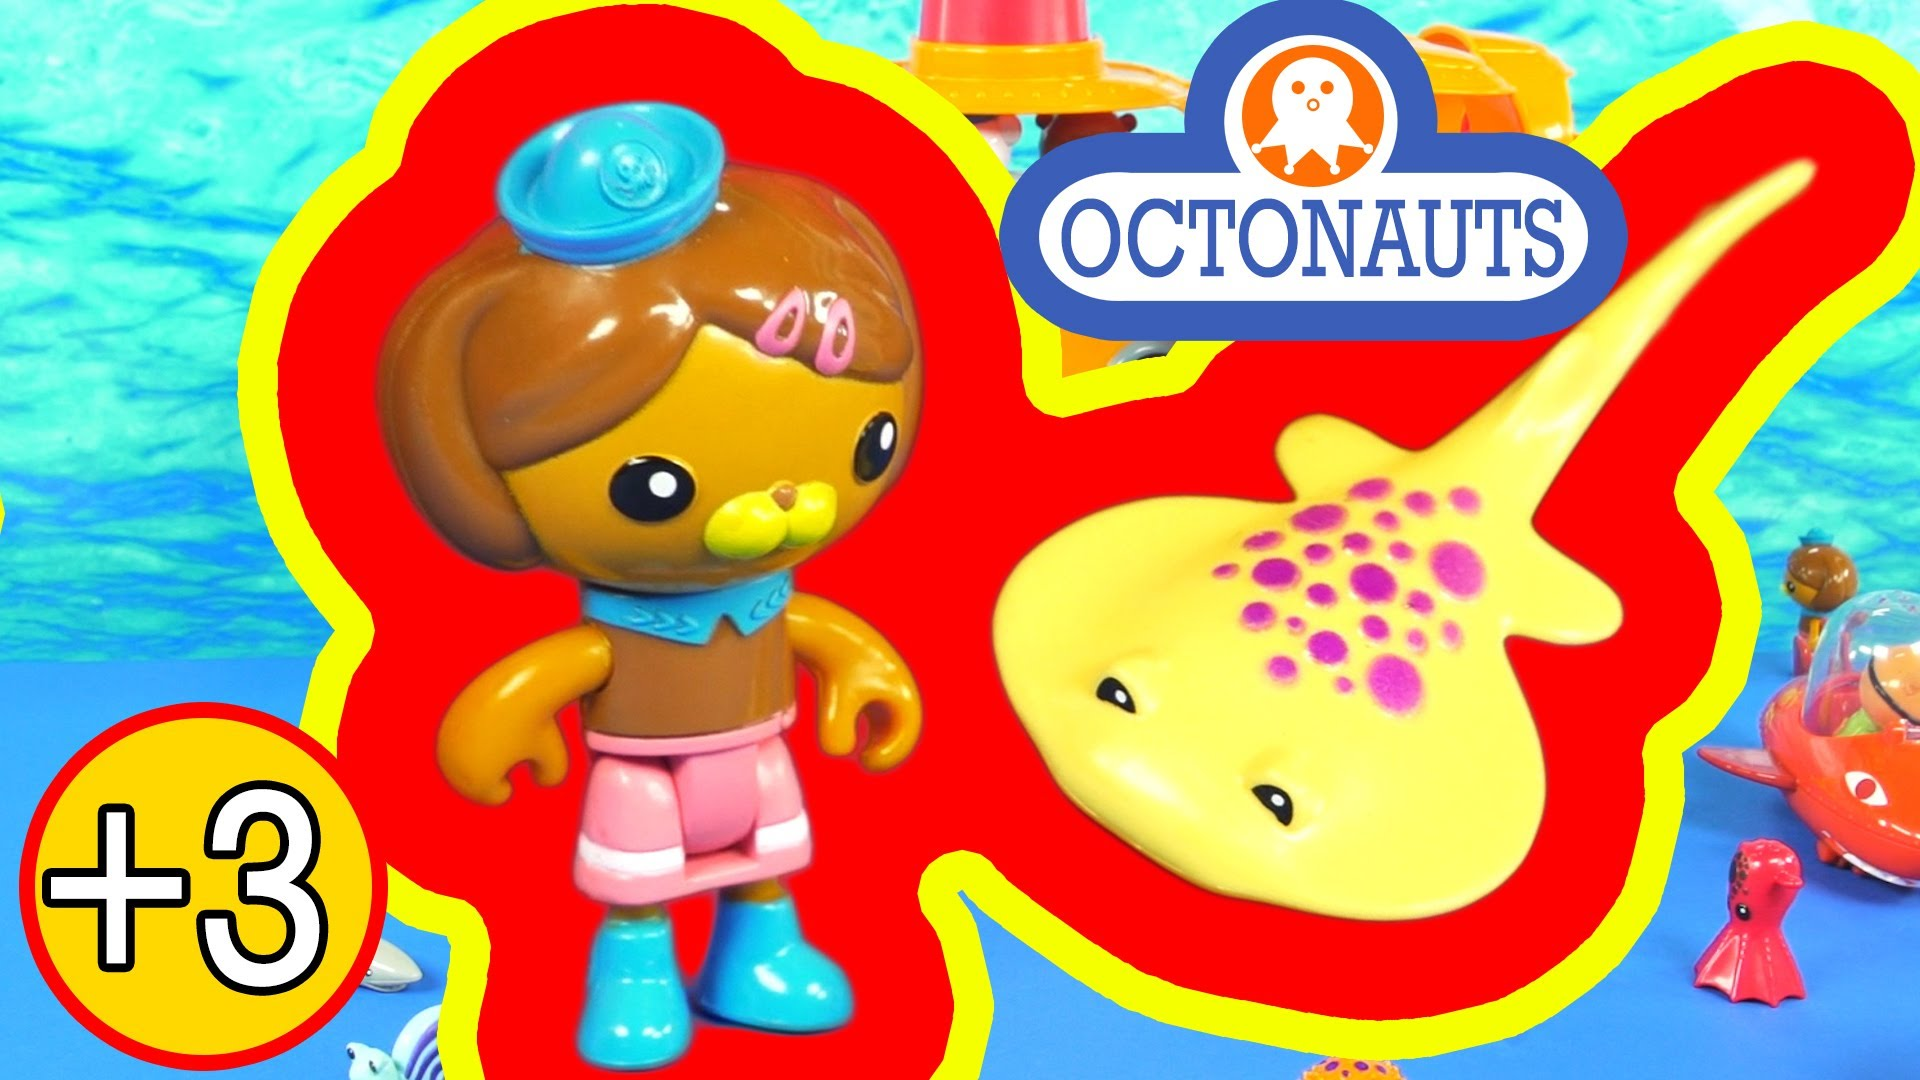 The Octonauts Dashi and the Electric Torpedo Ray Toy Figure.